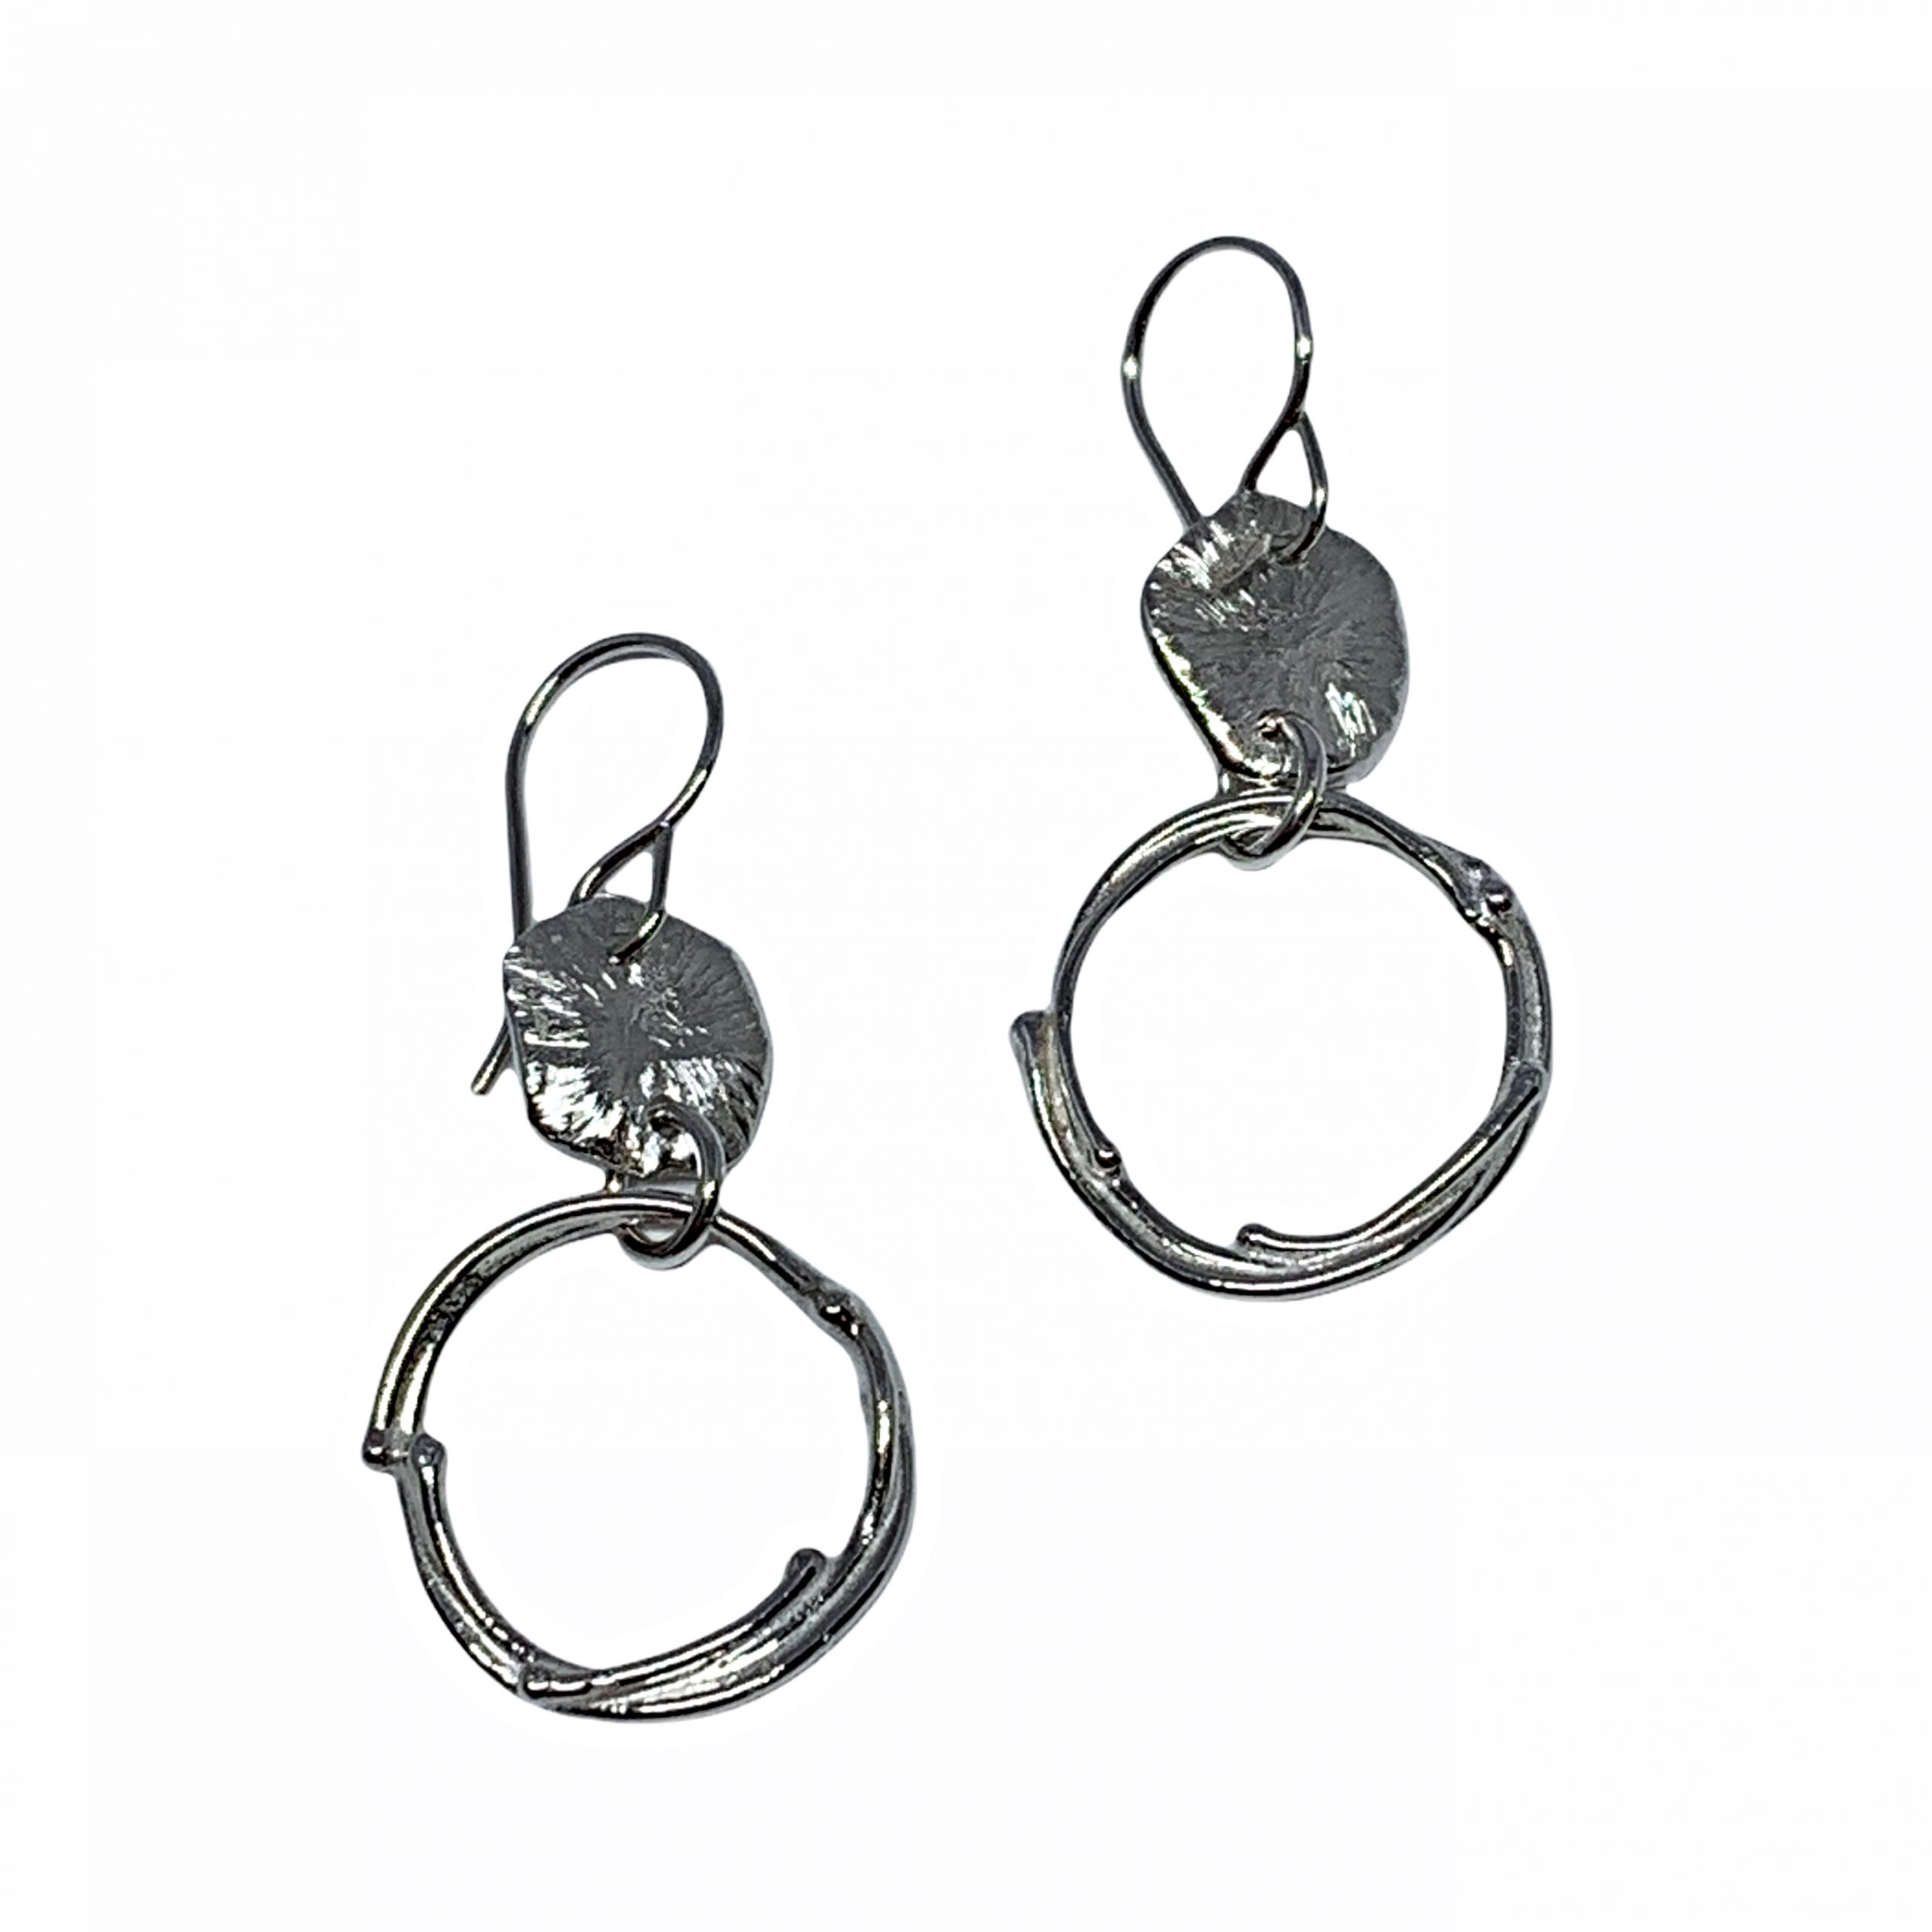 Handmade sterling silver earrings by A&R Jewellery   Effusion Art Gallery + Cast Glass Studio, Invermere BC